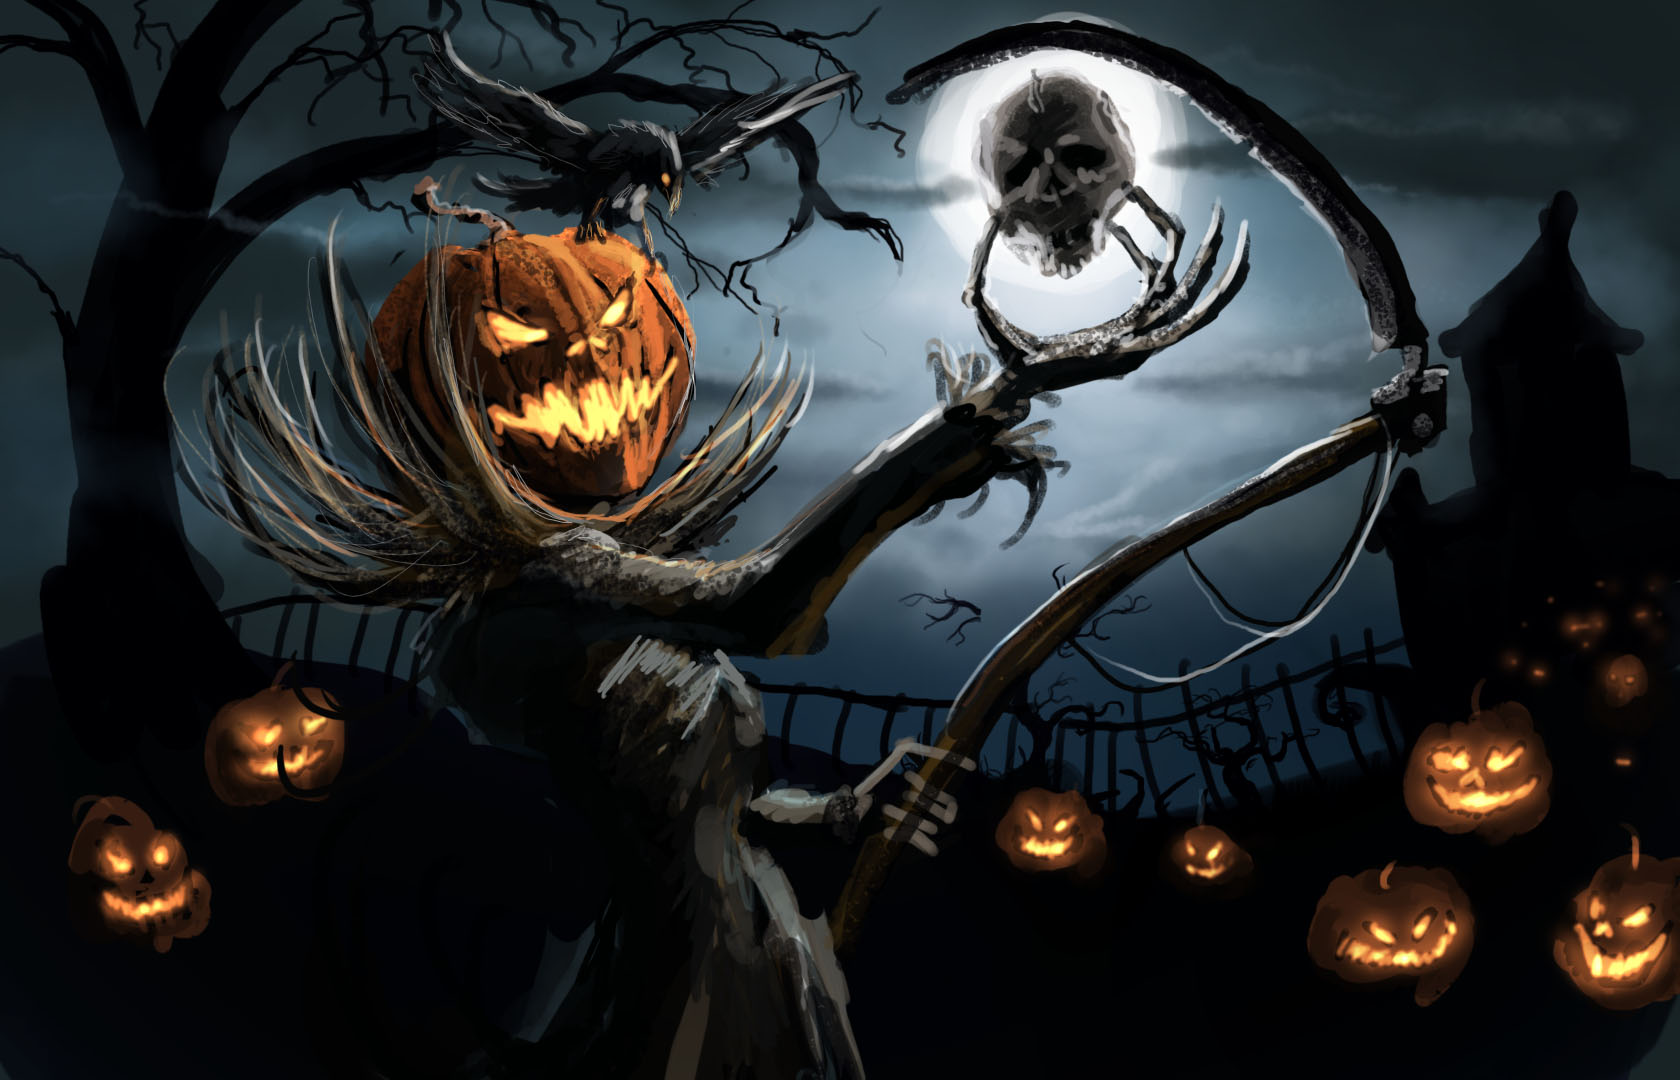 Halloween 2013 Backgrounds Wallpapers 1680x1080